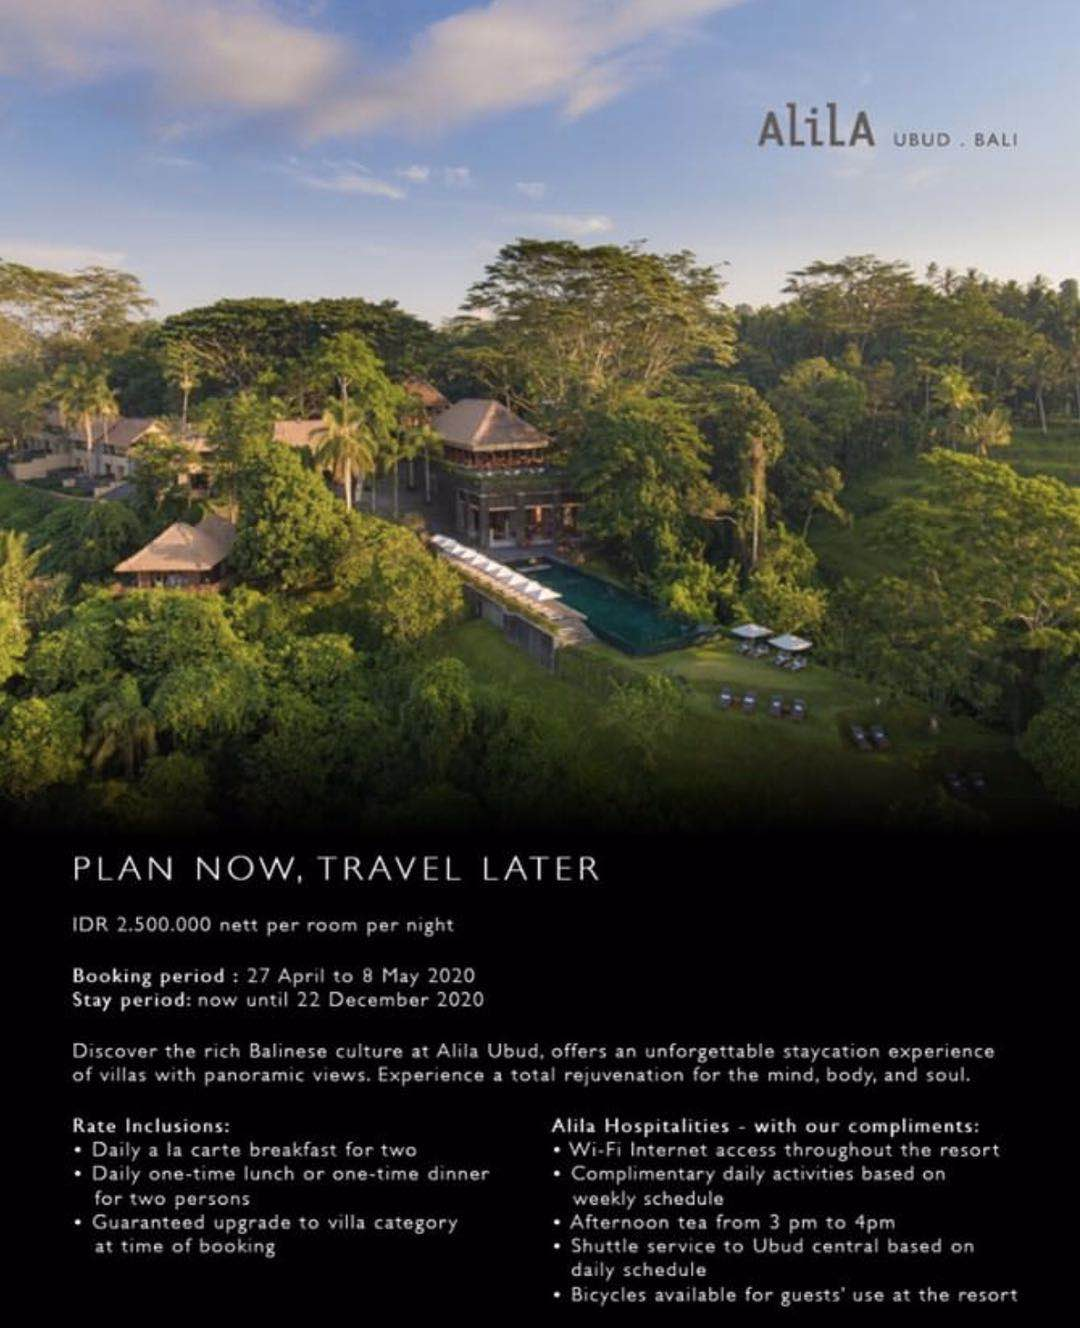 Excellent Opportunities For Pre Bookings In Bali Alila Ubud Villa Meal Plan For Just 160 Per Night Loyaltylobby